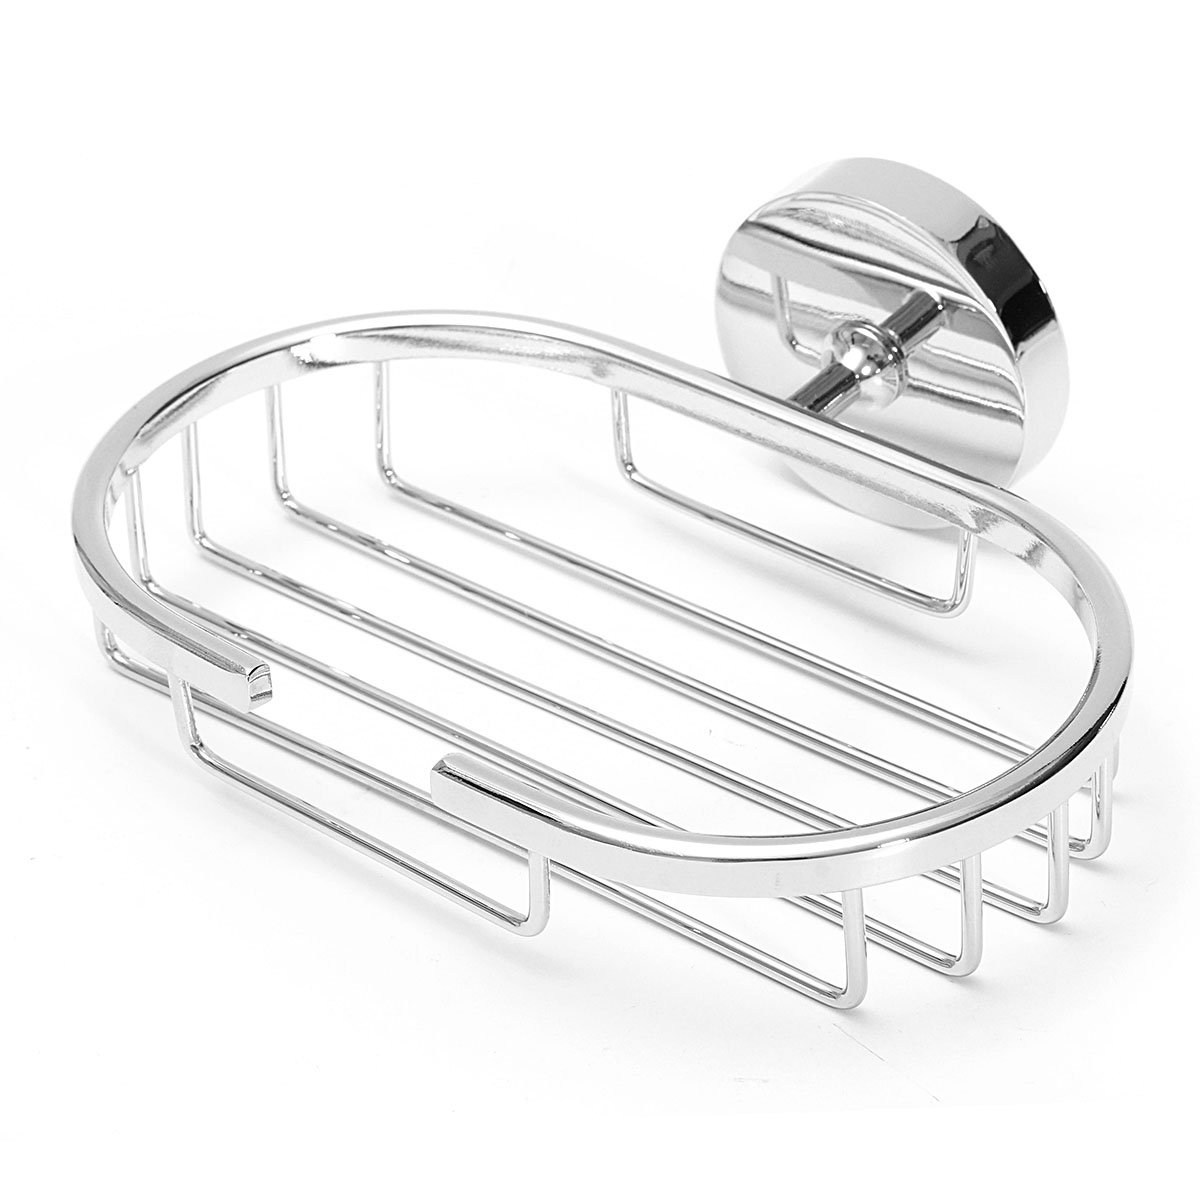 304 Stainless Steel Soap Dishes, Soap Holder, Soap Saver, Rustproof Wall Mounted Soap Dish Shower Soap Basket for Bathroom Lavatory Kitchen